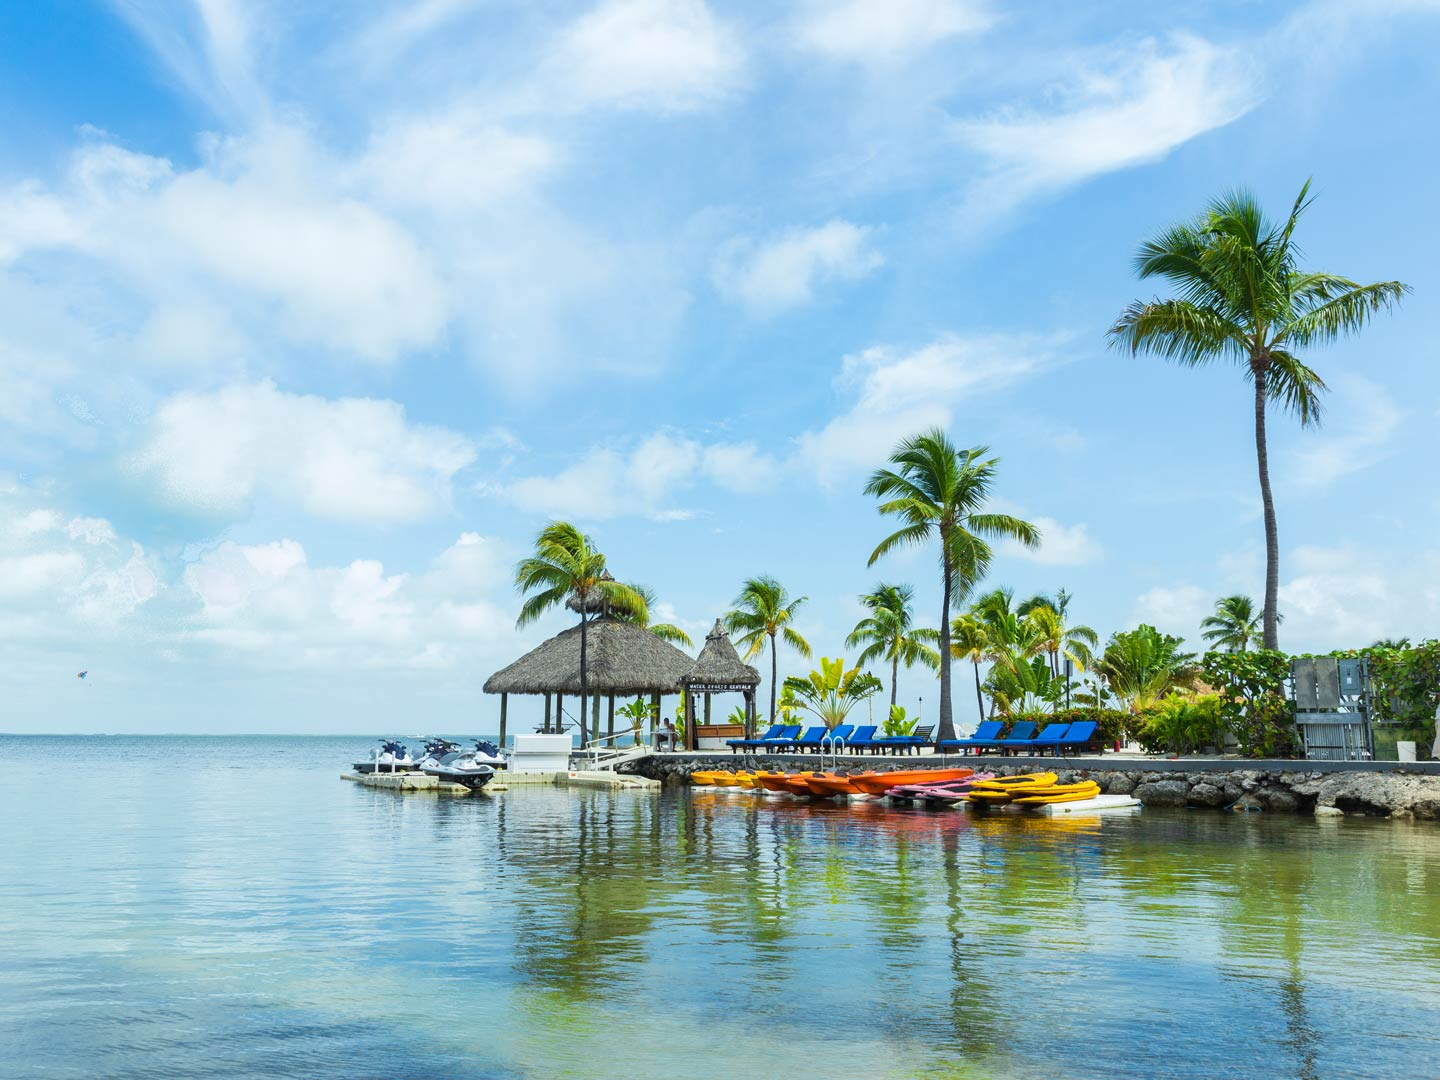 The docks with palm trees in Key Largo, Florida